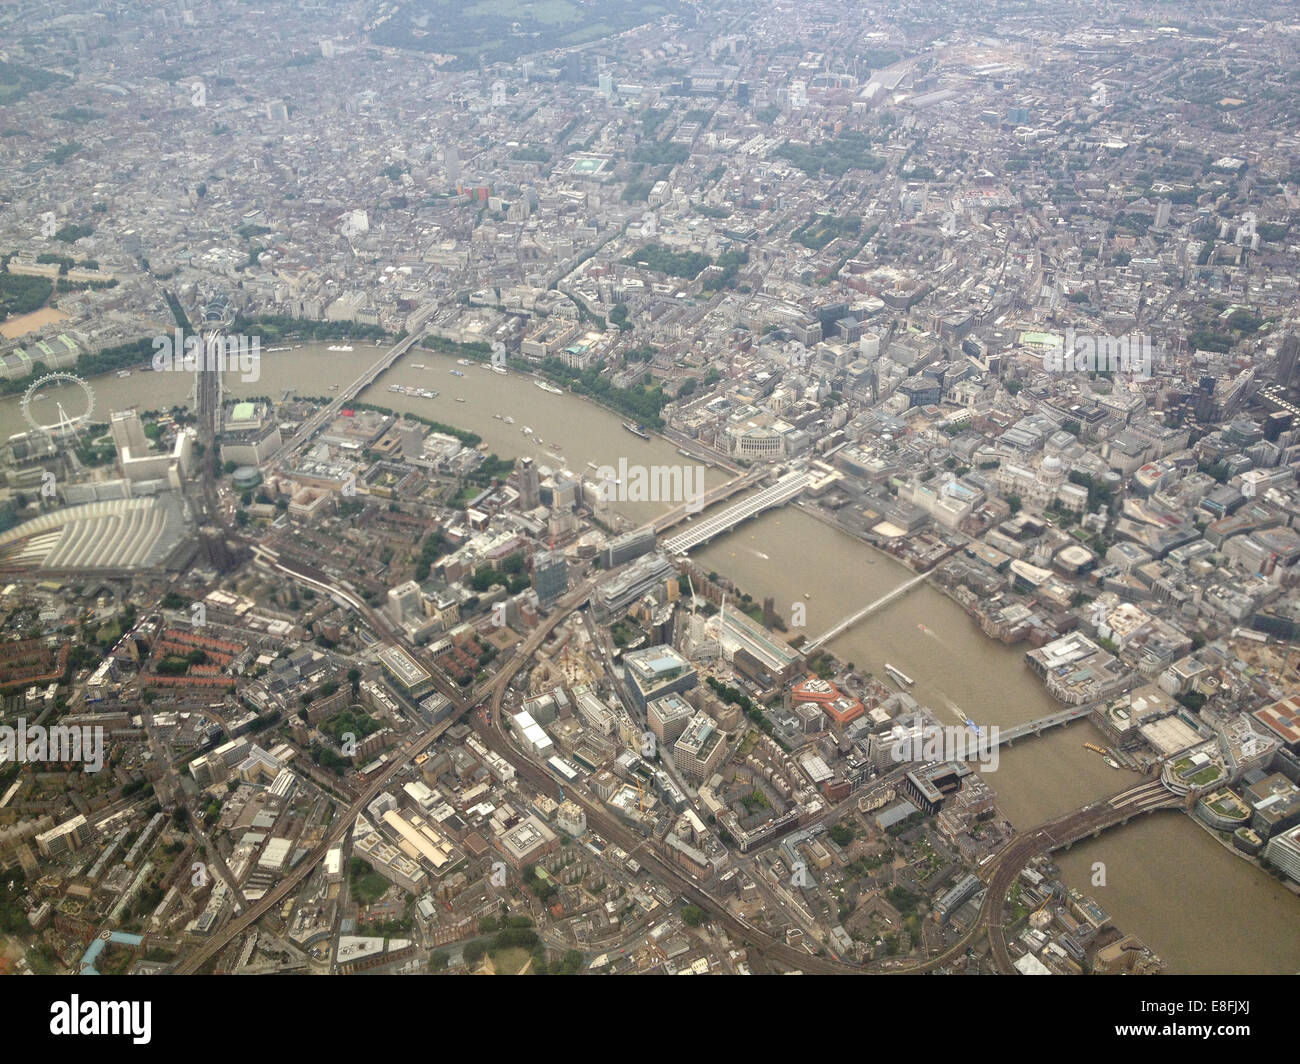 UK, London, River Thames from above - Stock Image